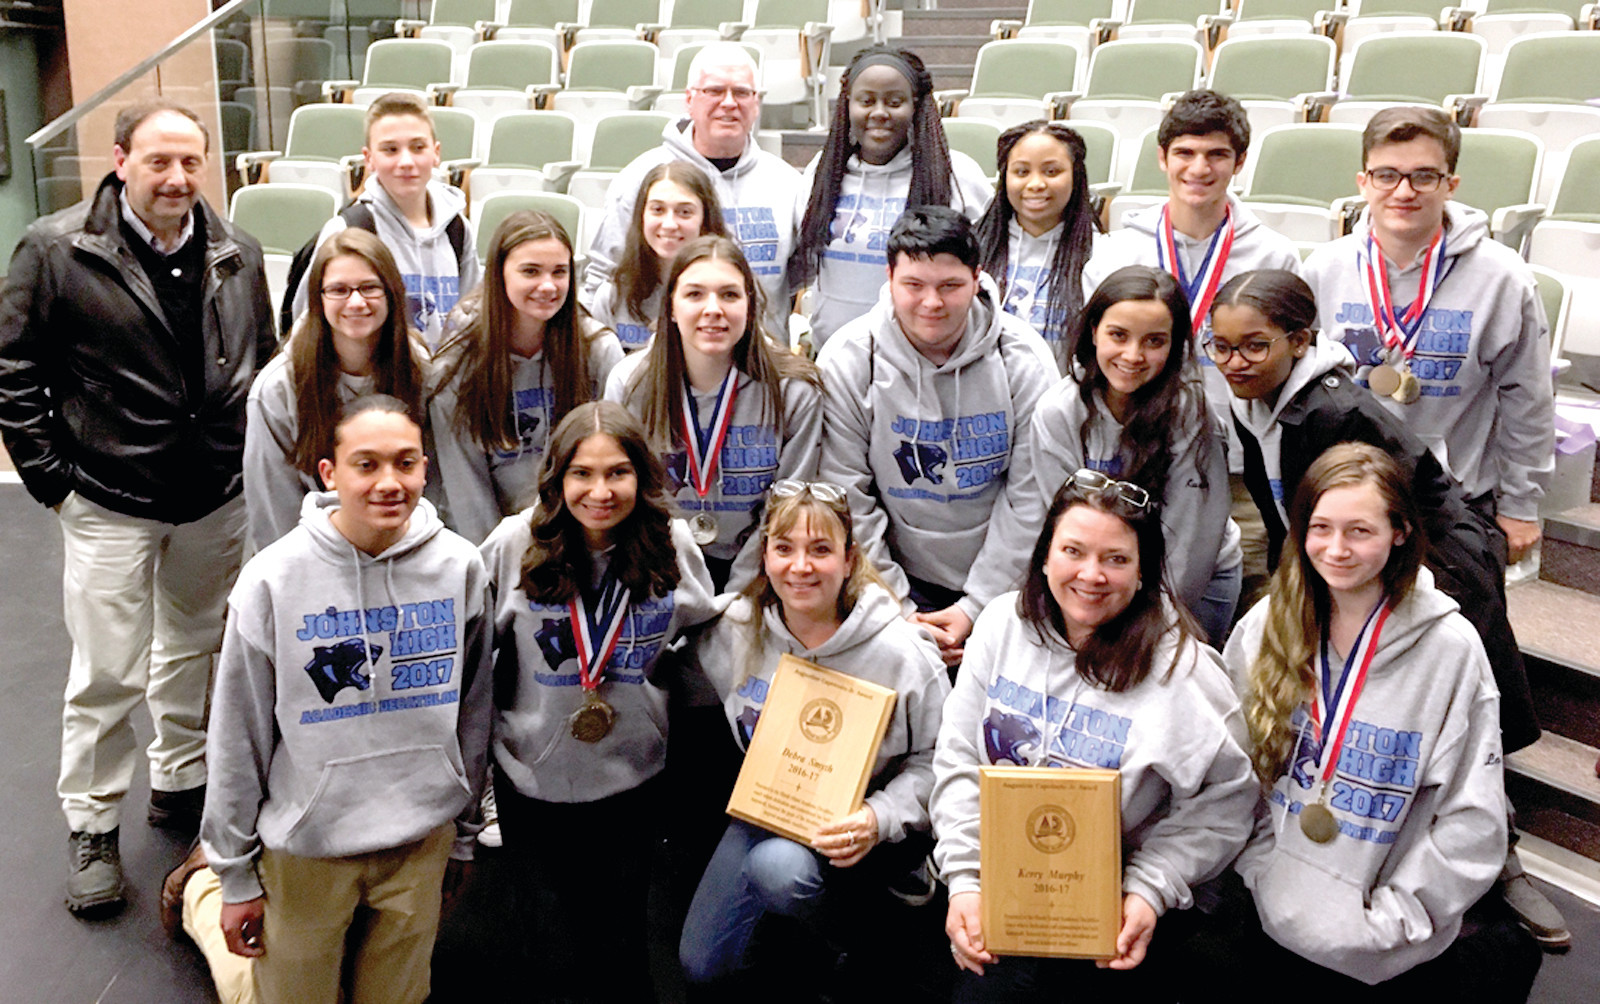 ANOTHER SUCCESSFUL YEAR: The Johnston Academic Decathlon team, joined by Superintendent Bernard DiLullo and Principal Dennis Morrell, placed fourth out of 15 schools during the 34th Rhode Island Academic Decathlon competition.